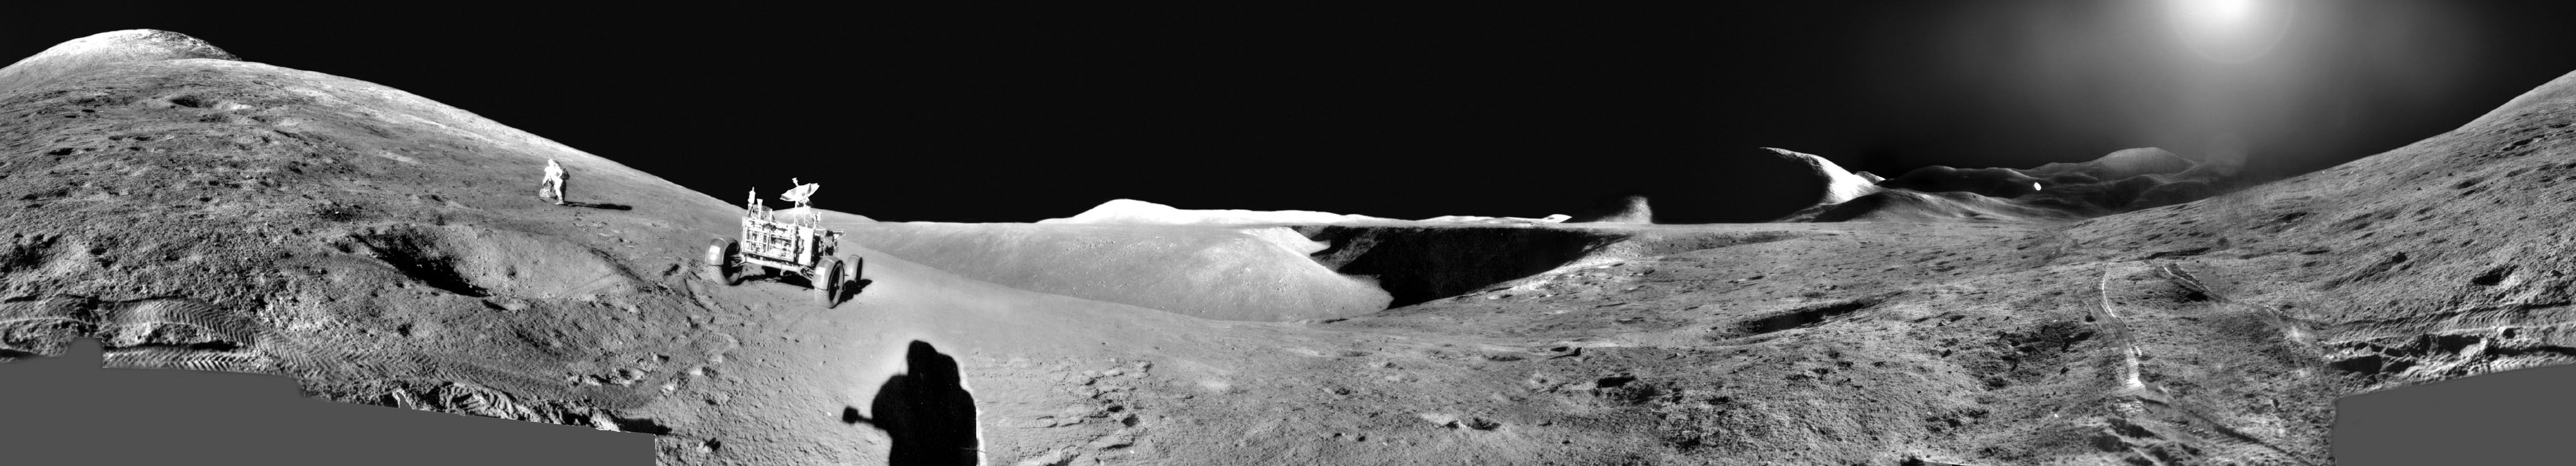 http://apod.nasa.gov/apod/image/1608/hillpan_apollo15_big.jpg